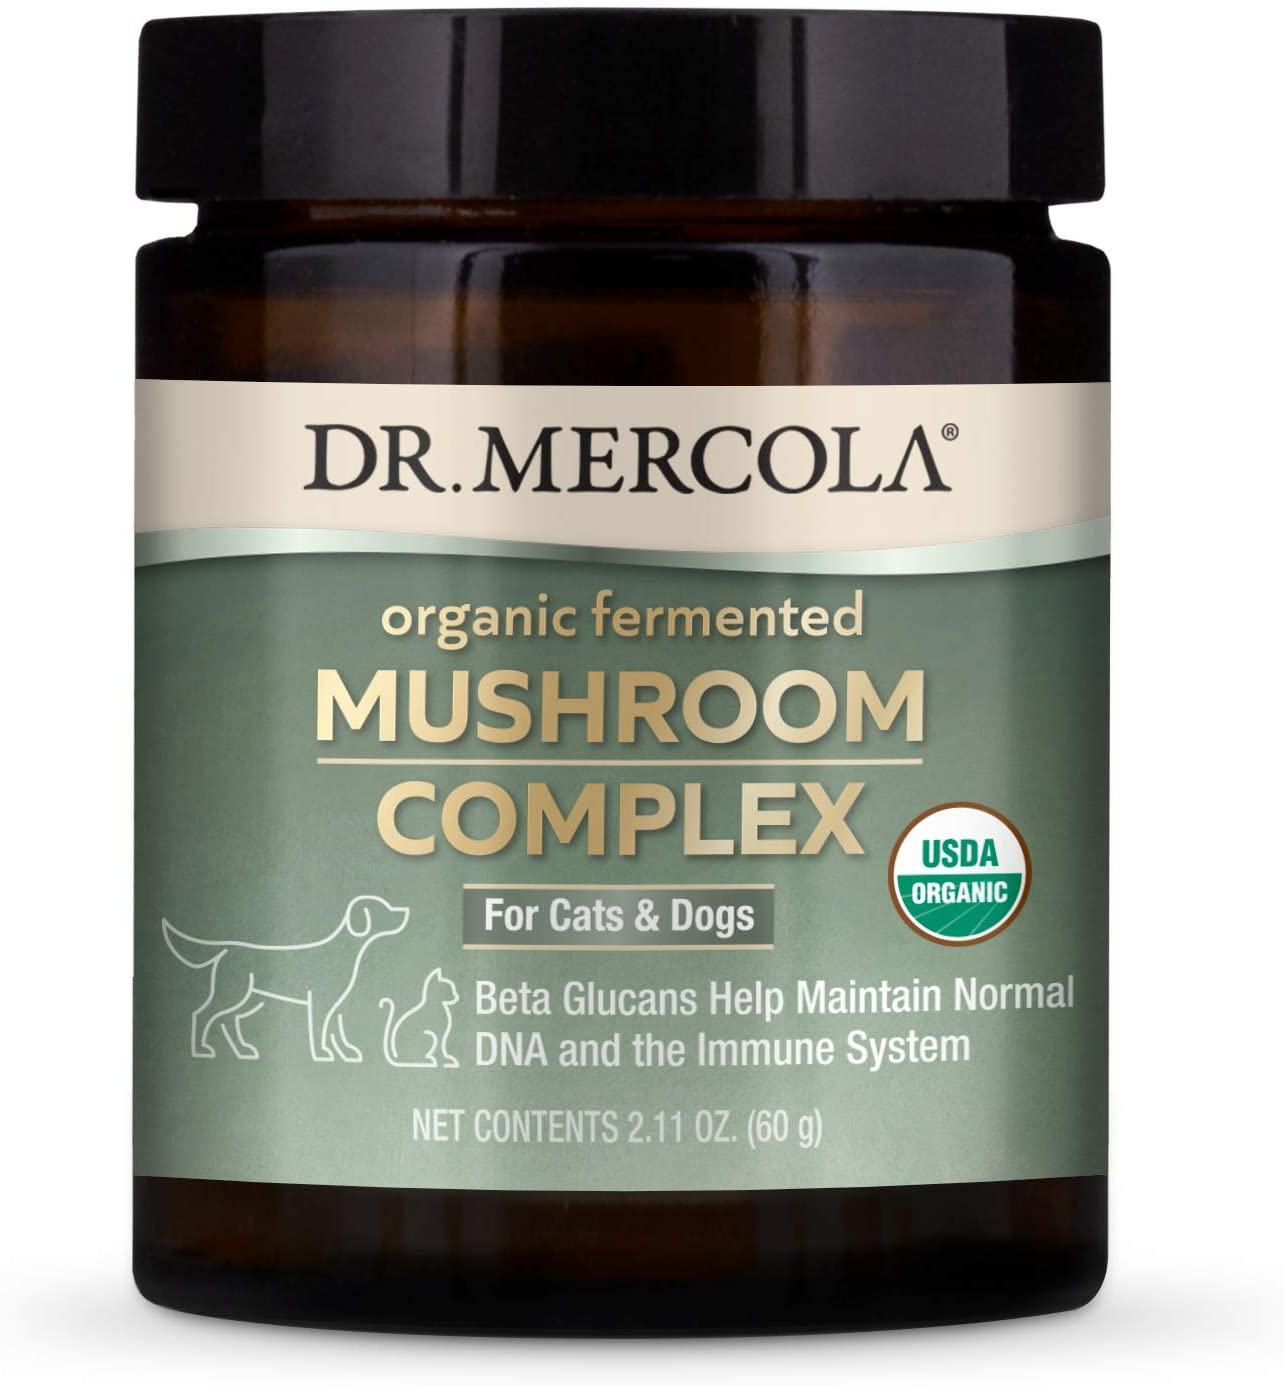 Fermented mushroom complex immune booster for dogs